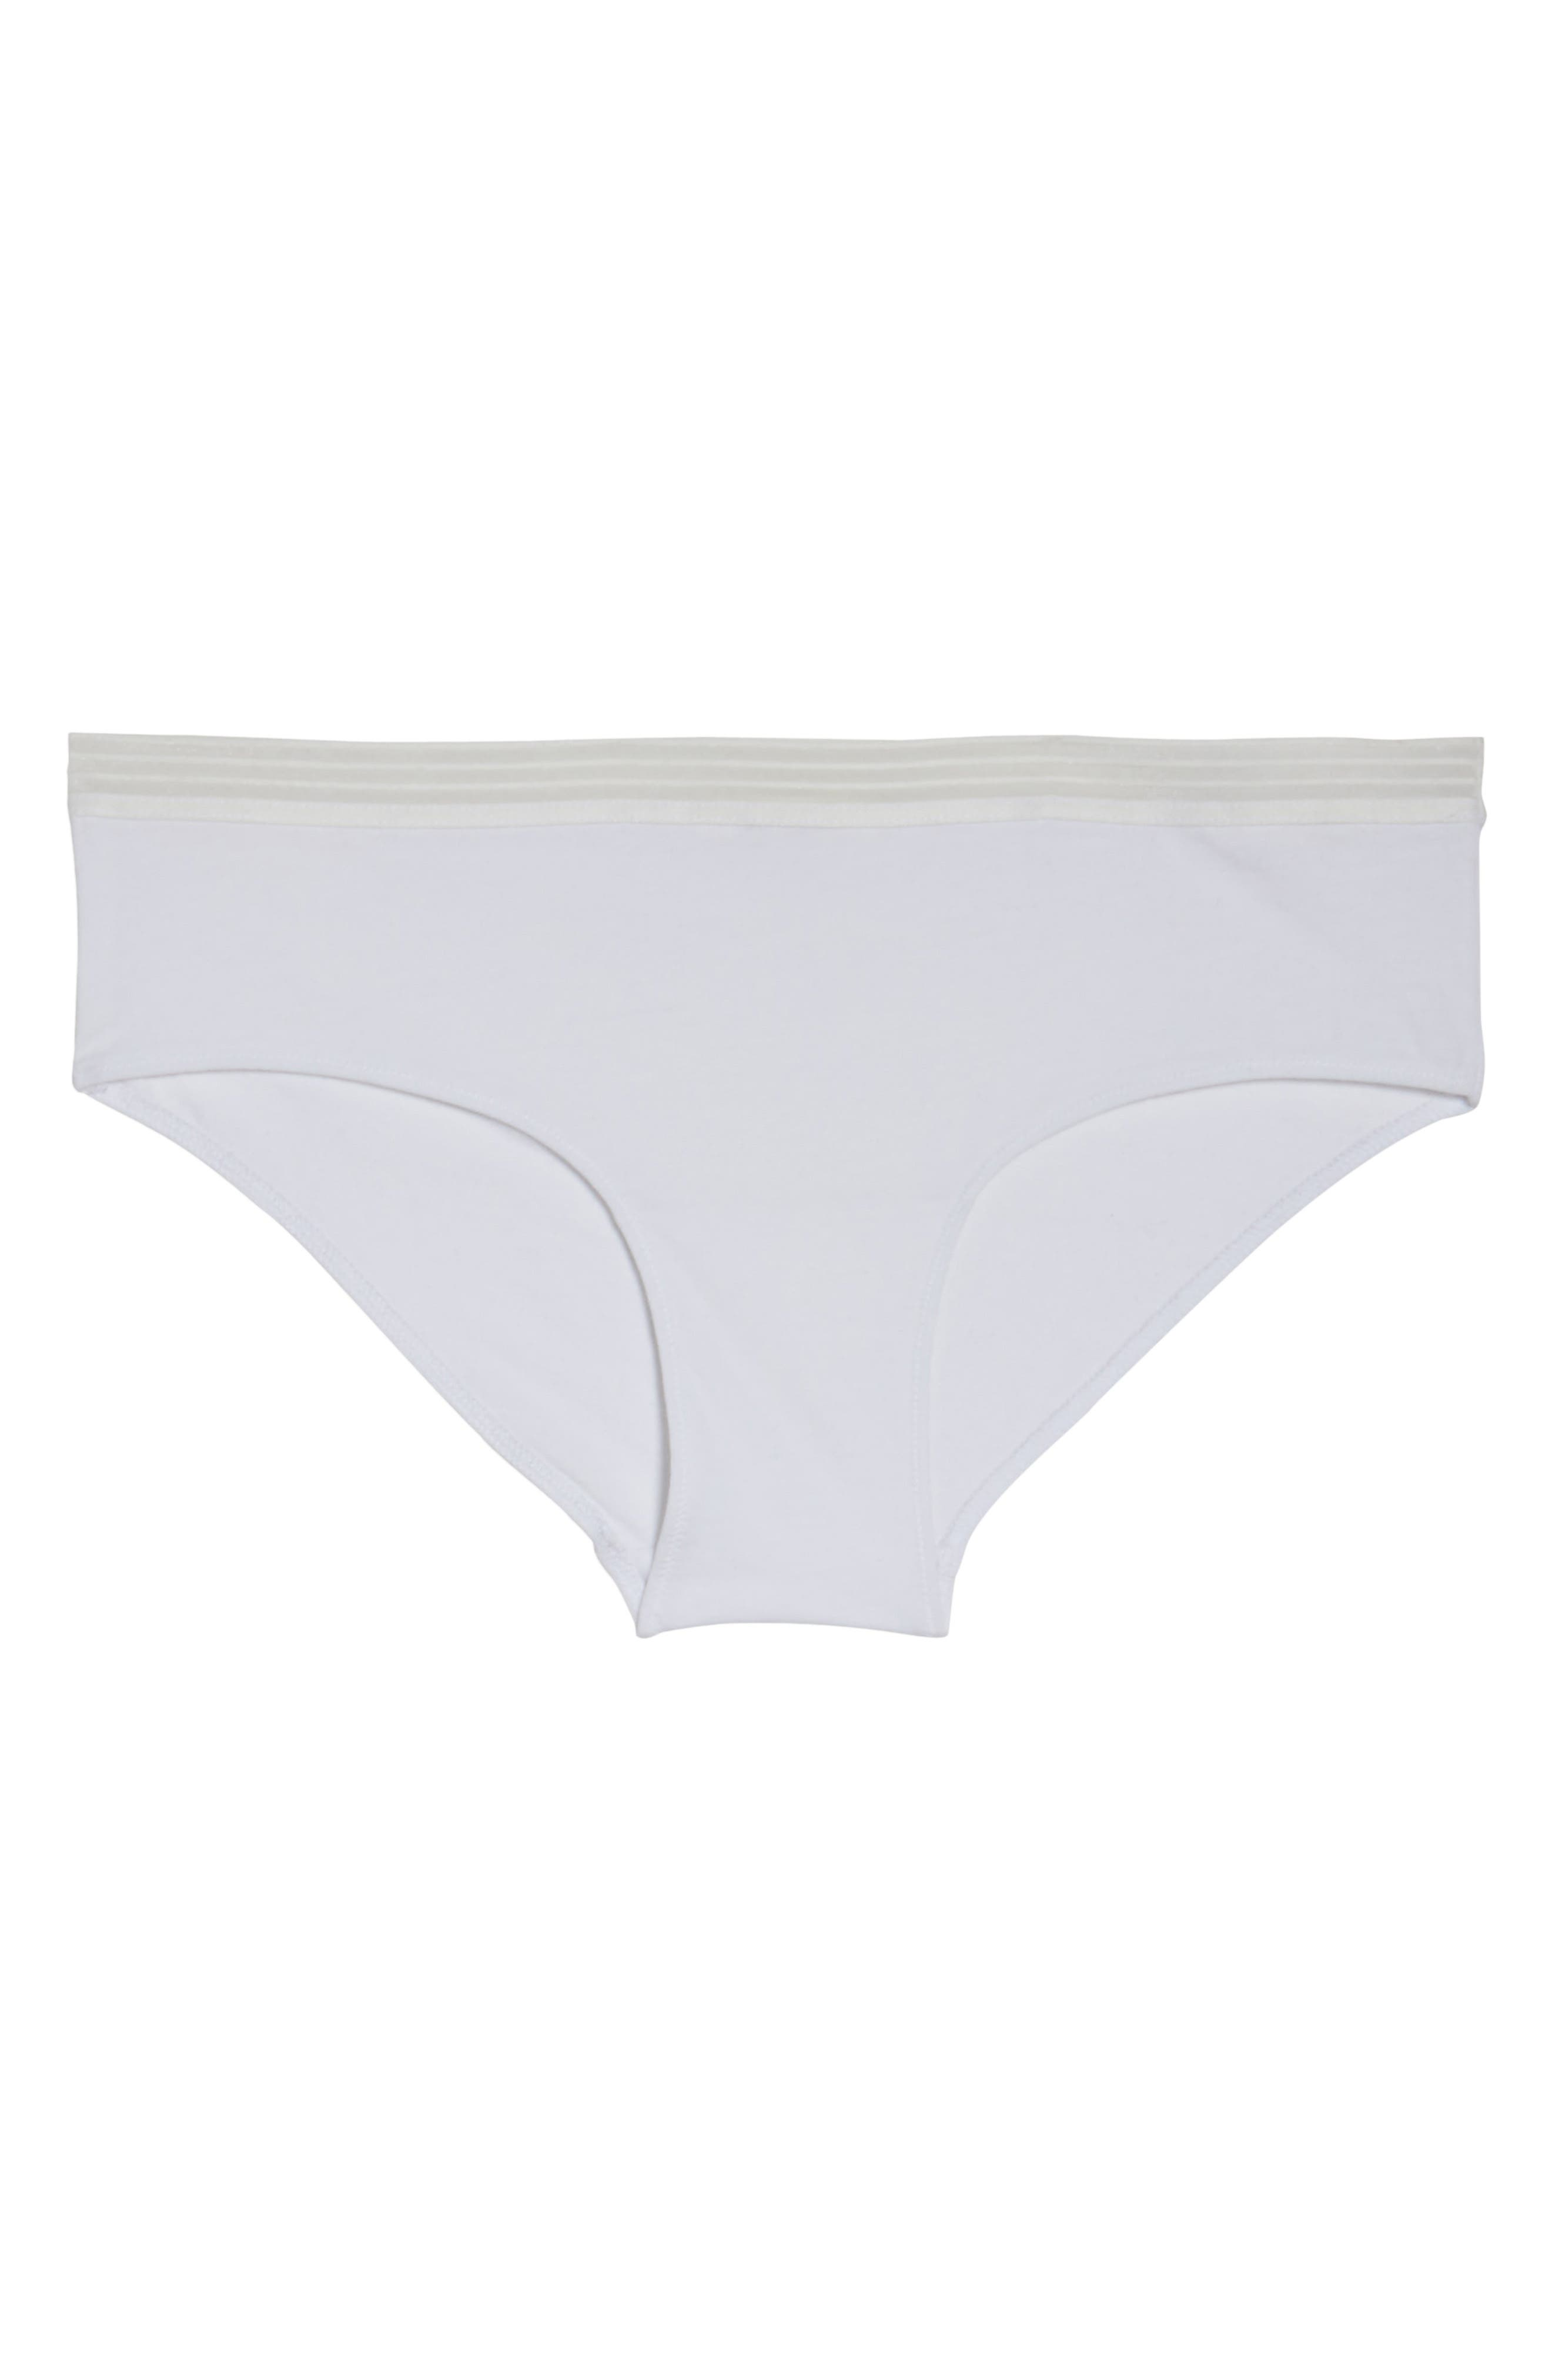 Sienna Hipster Briefs,                             Alternate thumbnail 4, color,                             White